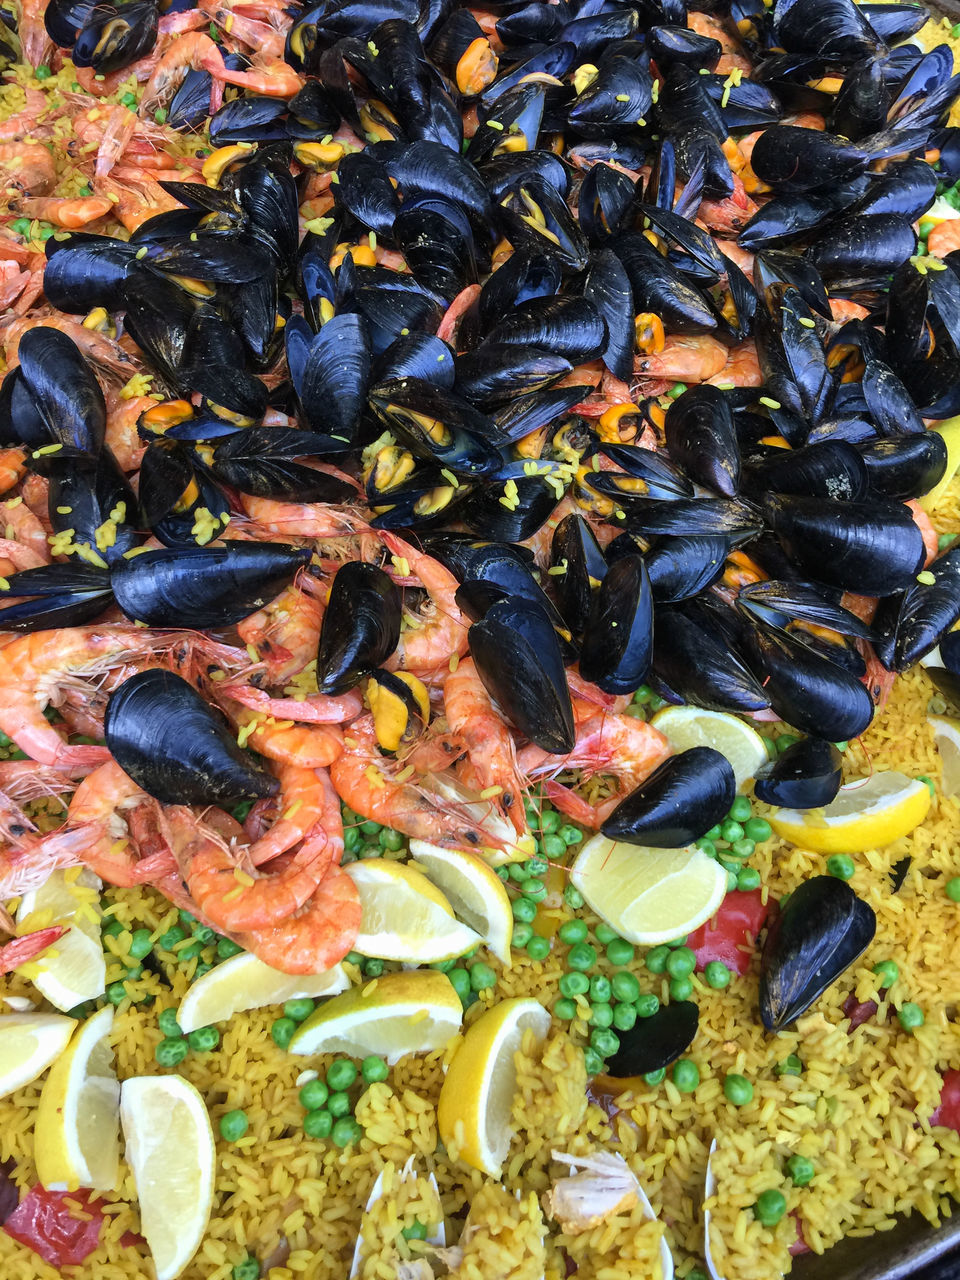 seafood, mussel, food and drink, food, no people, high angle view, full frame, large group of animals, healthy eating, prawn, freshness, animal themes, indoors, day, ready-to-eat, close-up, sea life